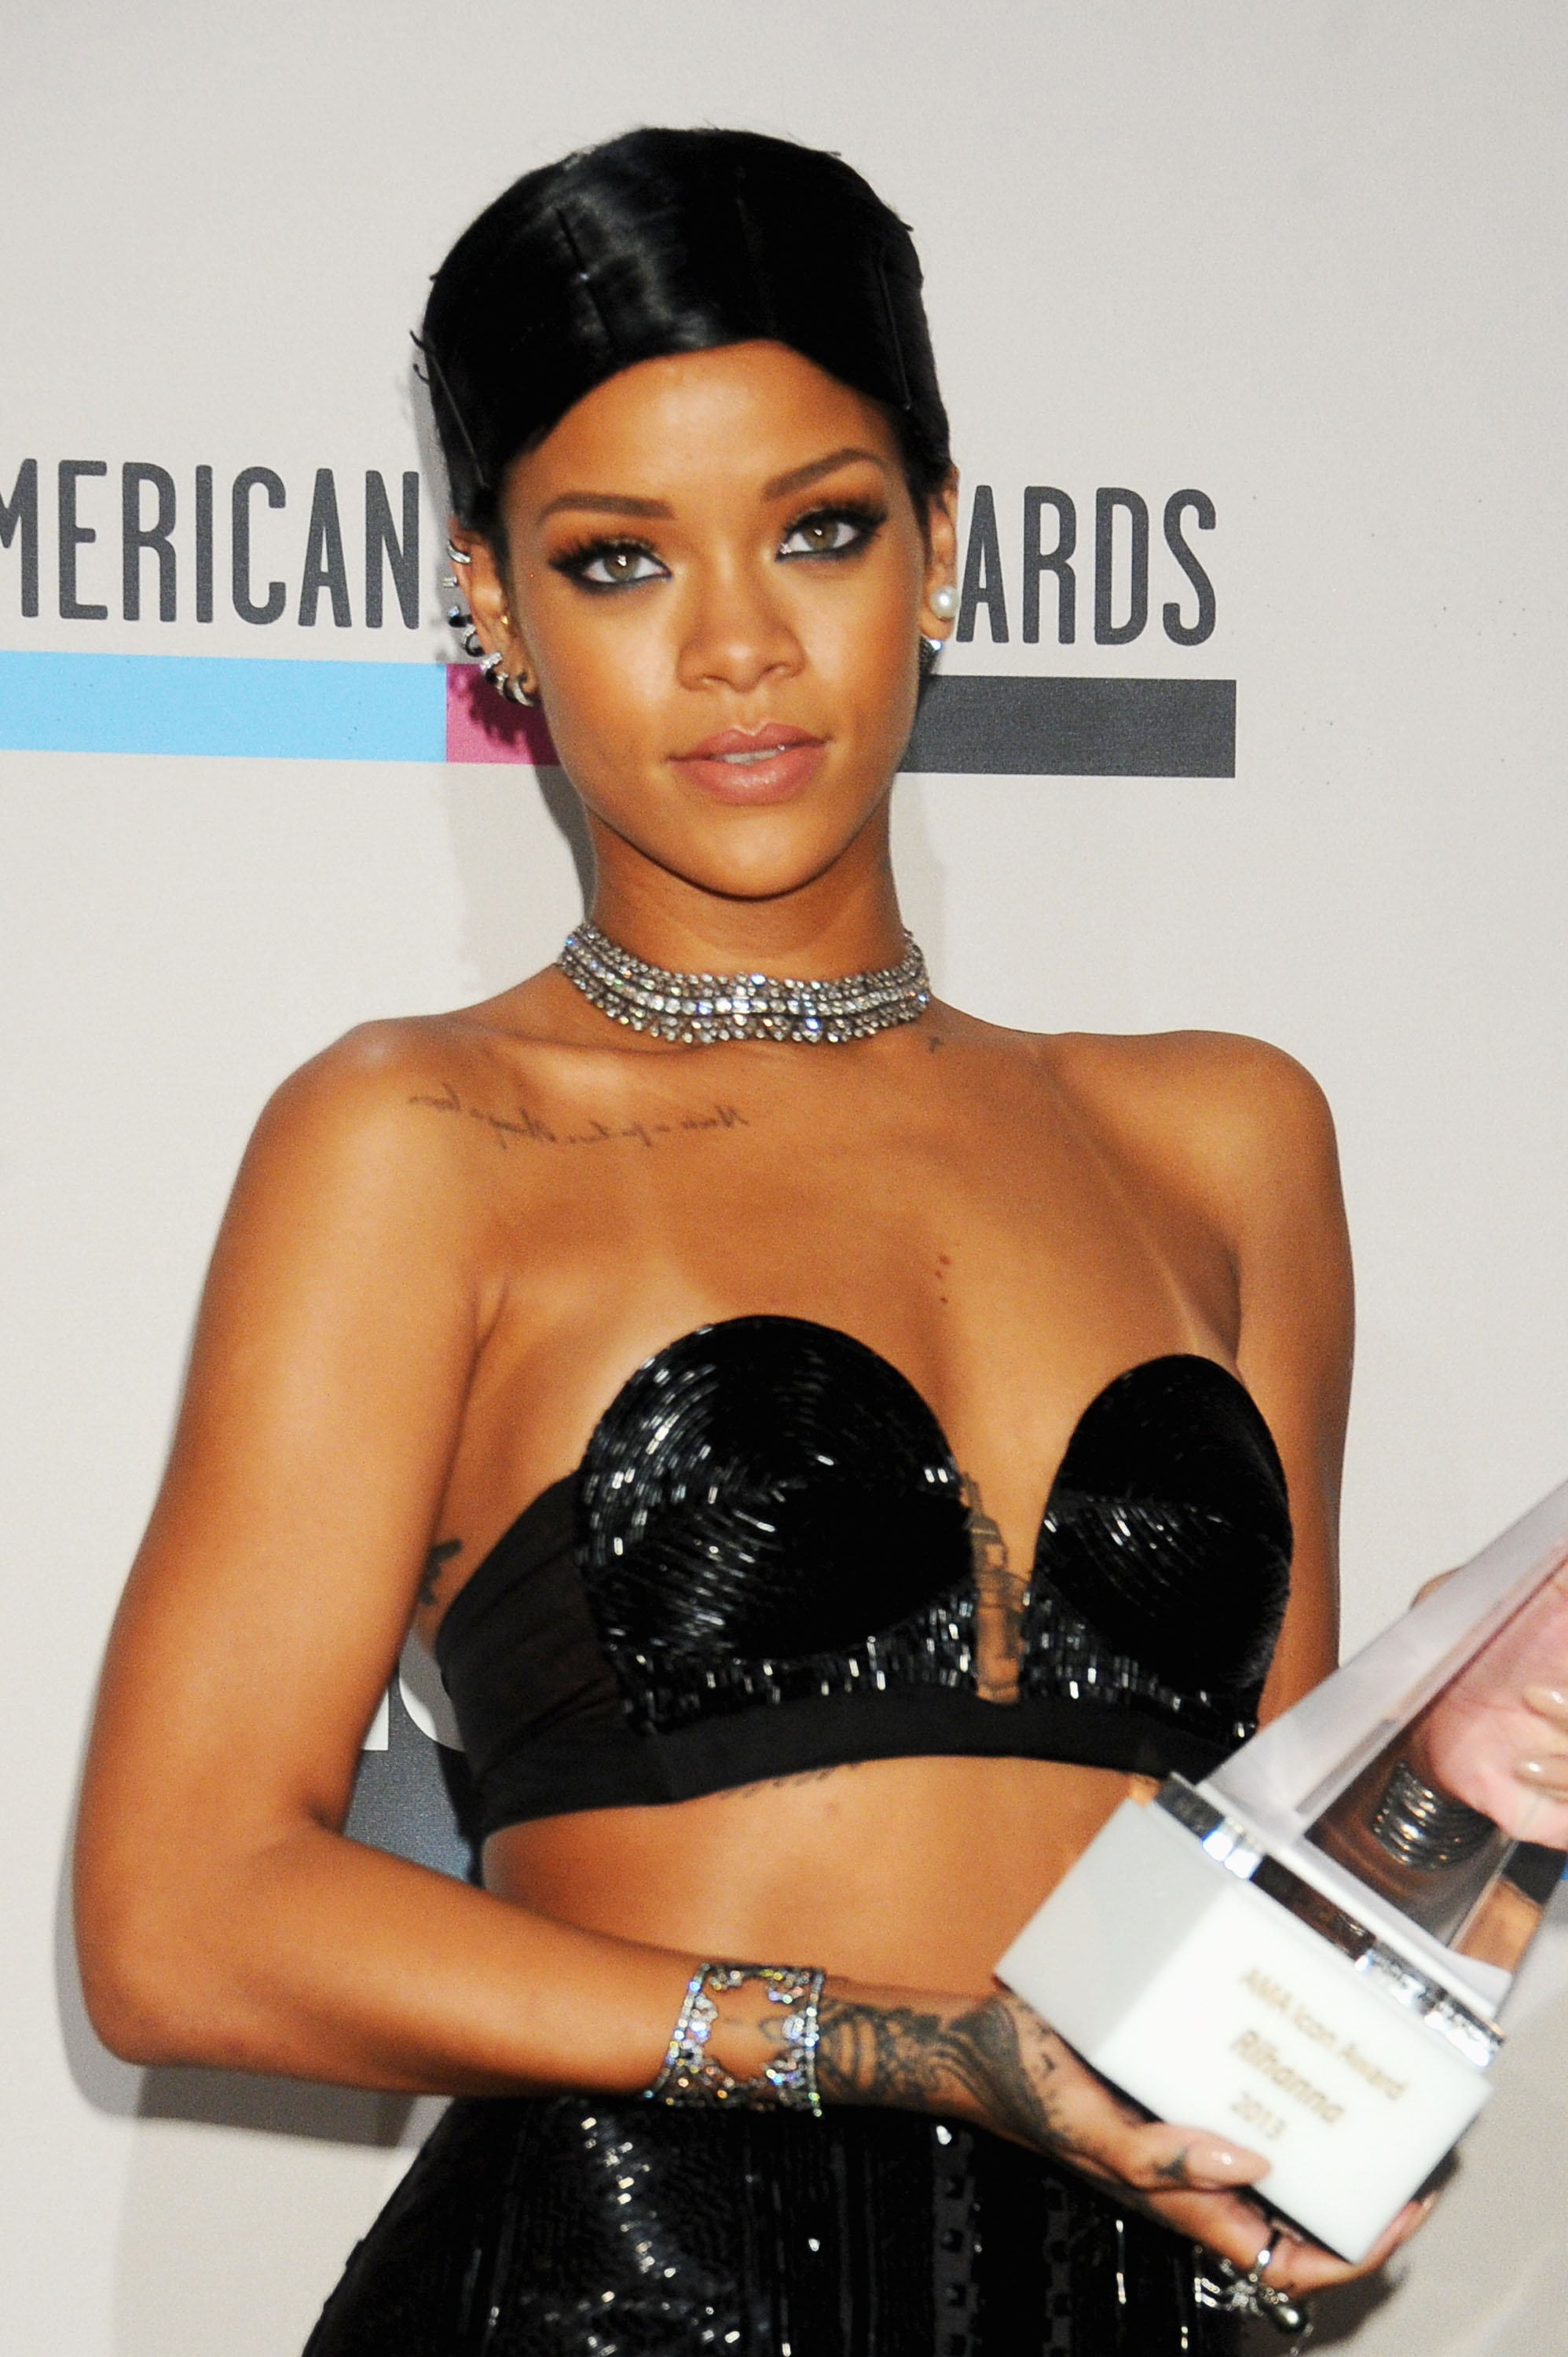 Rihanna Ama Hairstyle Still Causing Stir 3 Things To Know About